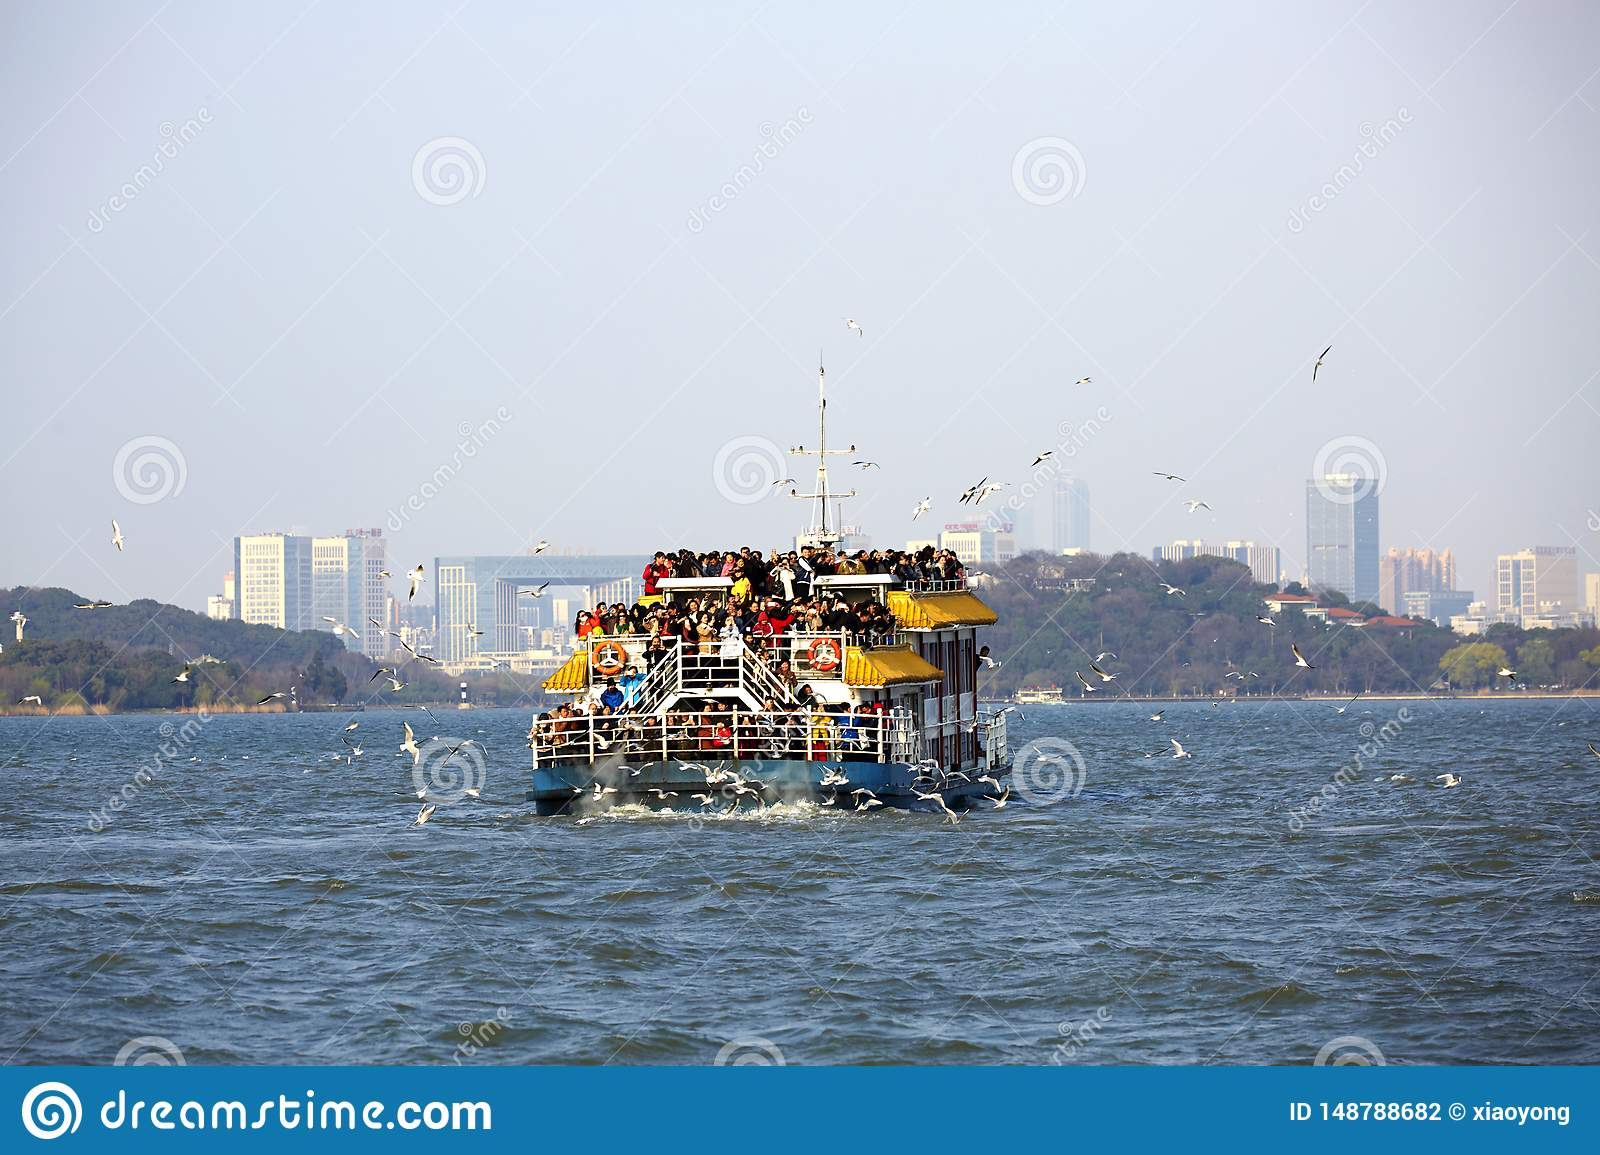 Ship with mass travelers on Taihu Lake, Wuxi, China